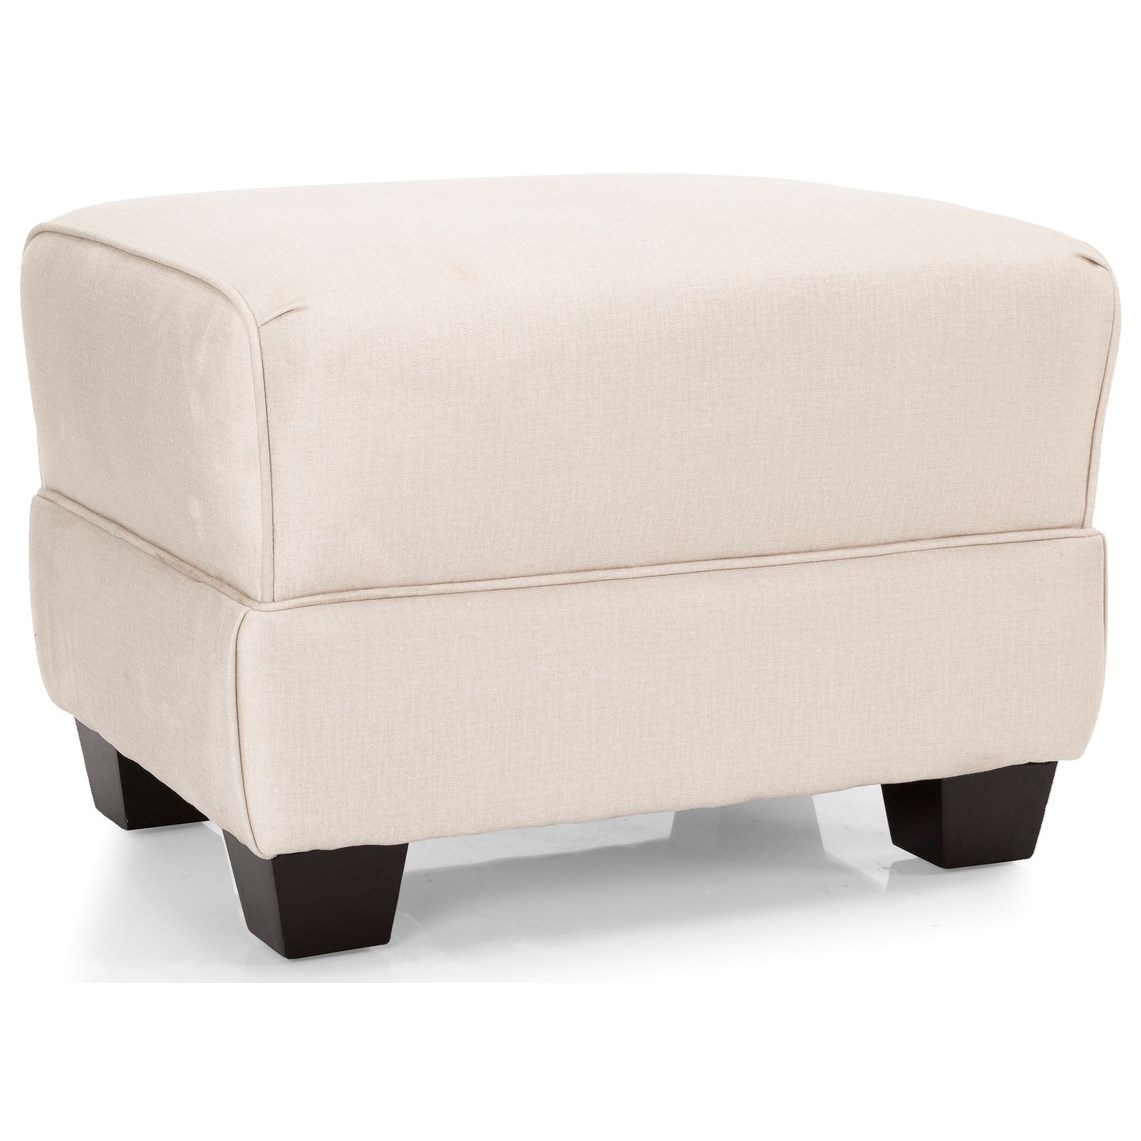 2118 Ottoman by Decor-Rest at Upper Room Home Furnishings